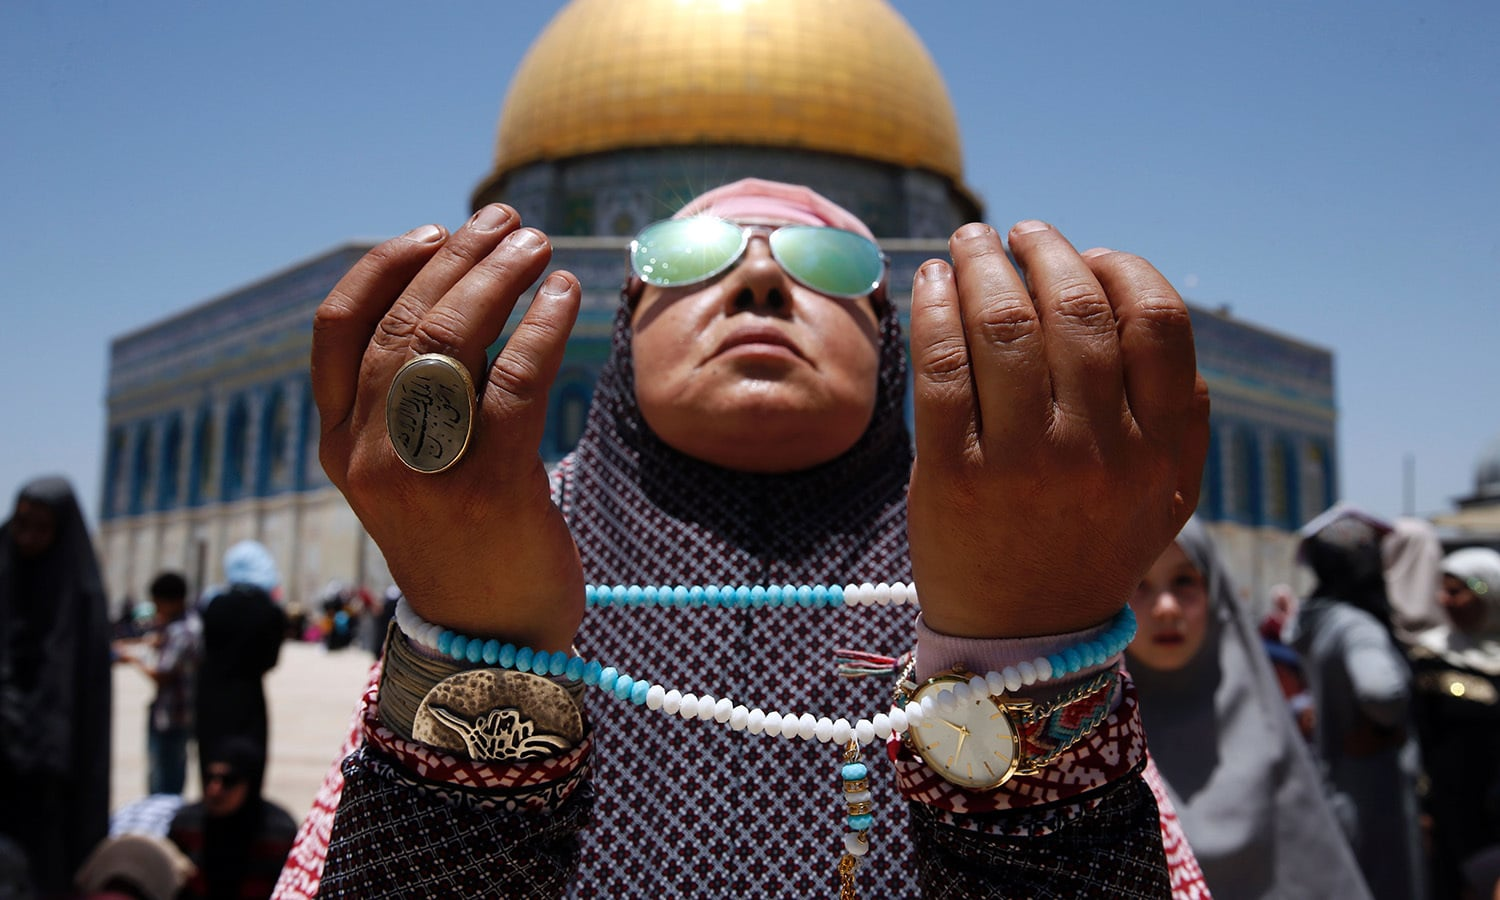 A Palestinian worshipper attends the second Friday prayers of Ramazan in front of the Dome of the Rock at Jerusalem's al-Aqsa mosque compound on June 9.— AFP